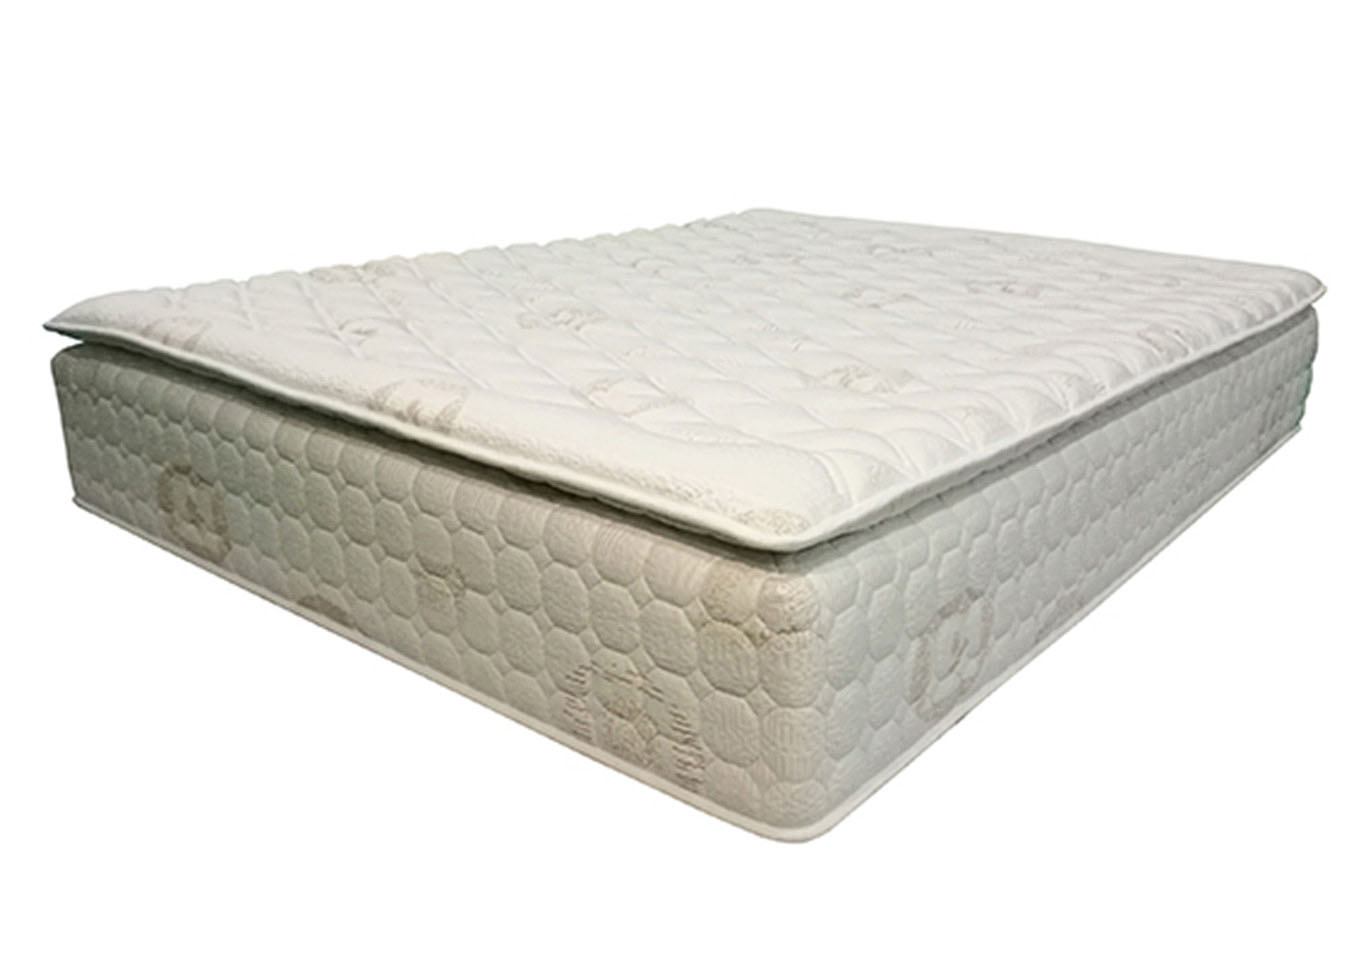 Cool Sleep Luxury Queen Mattress,Primo International